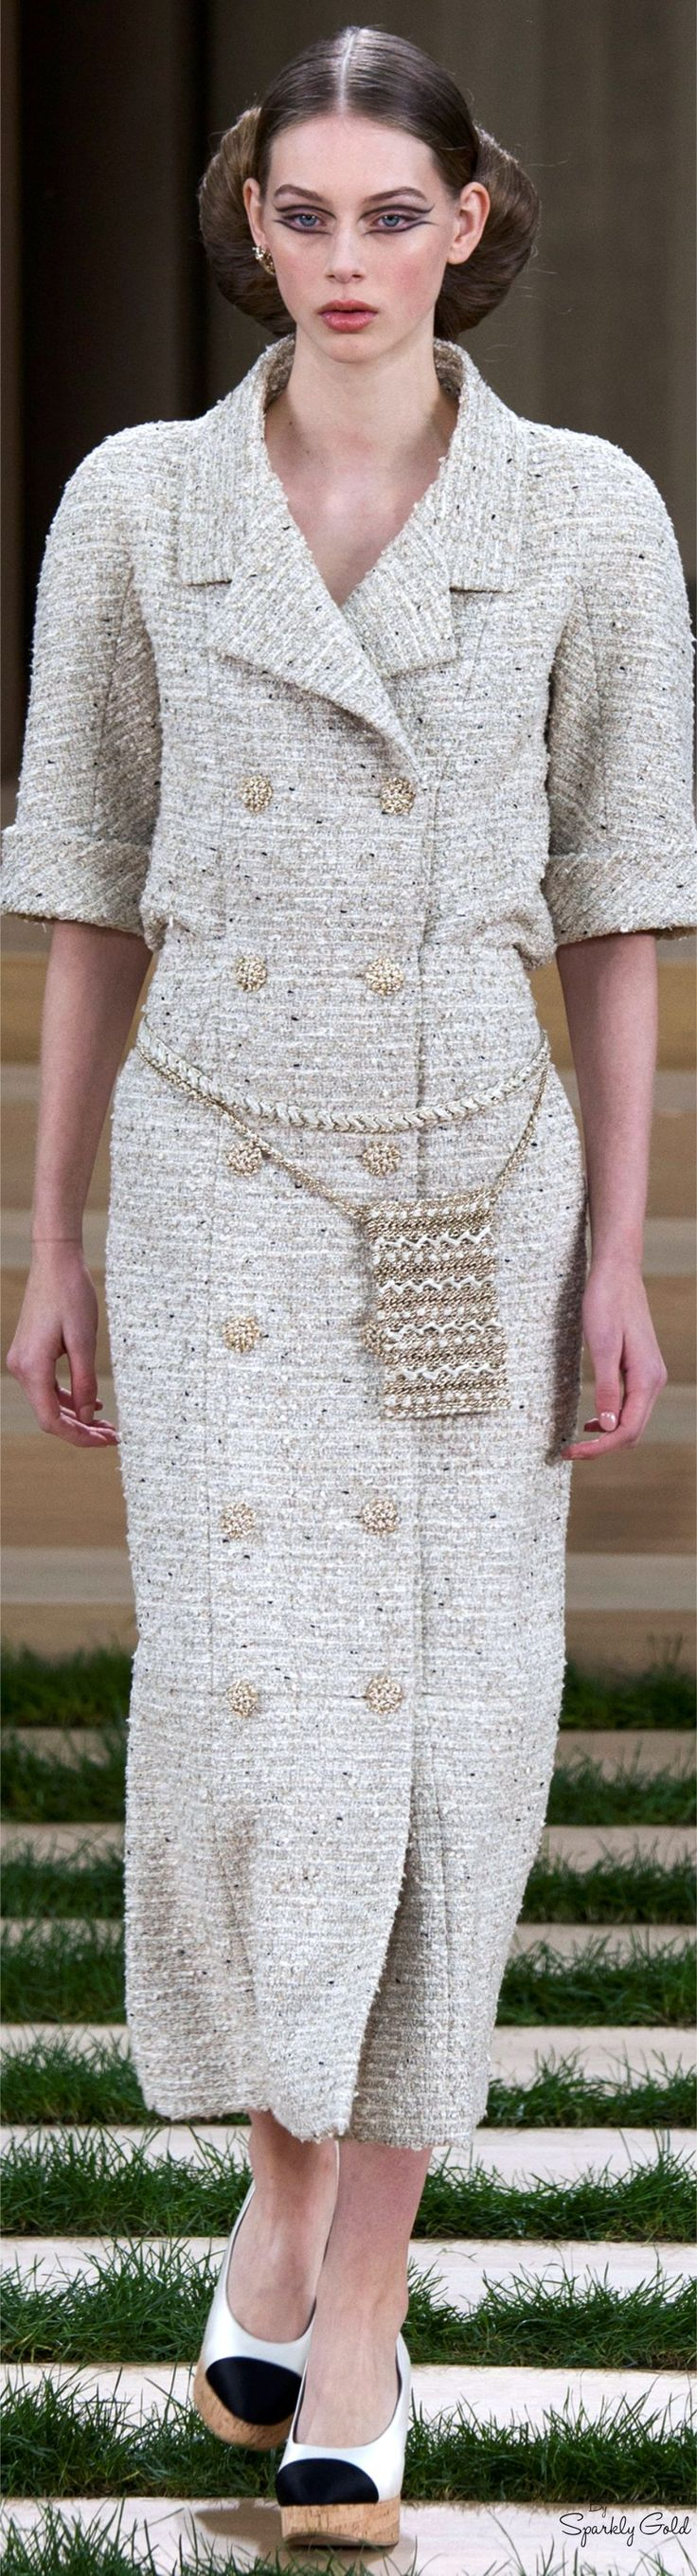 Chanel Spring 2016 Couture women fashion outfit clothing style apparel @roressclothes closet ideas